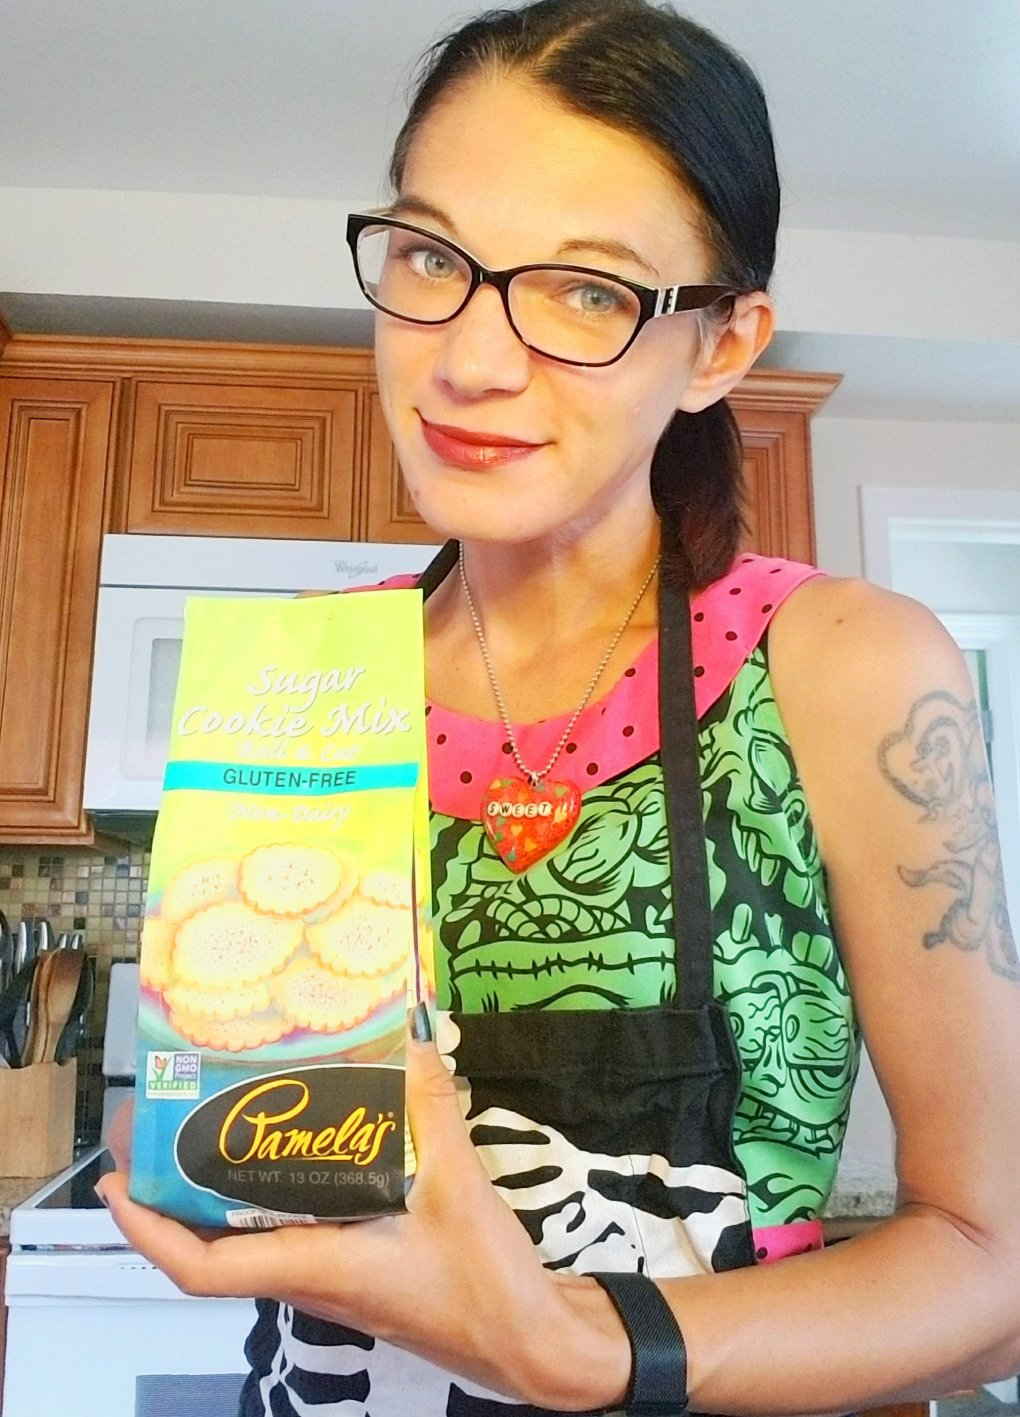 Give It A Whirl Girl with Pamela's Products Gluten Free Sugar Cookie Mix